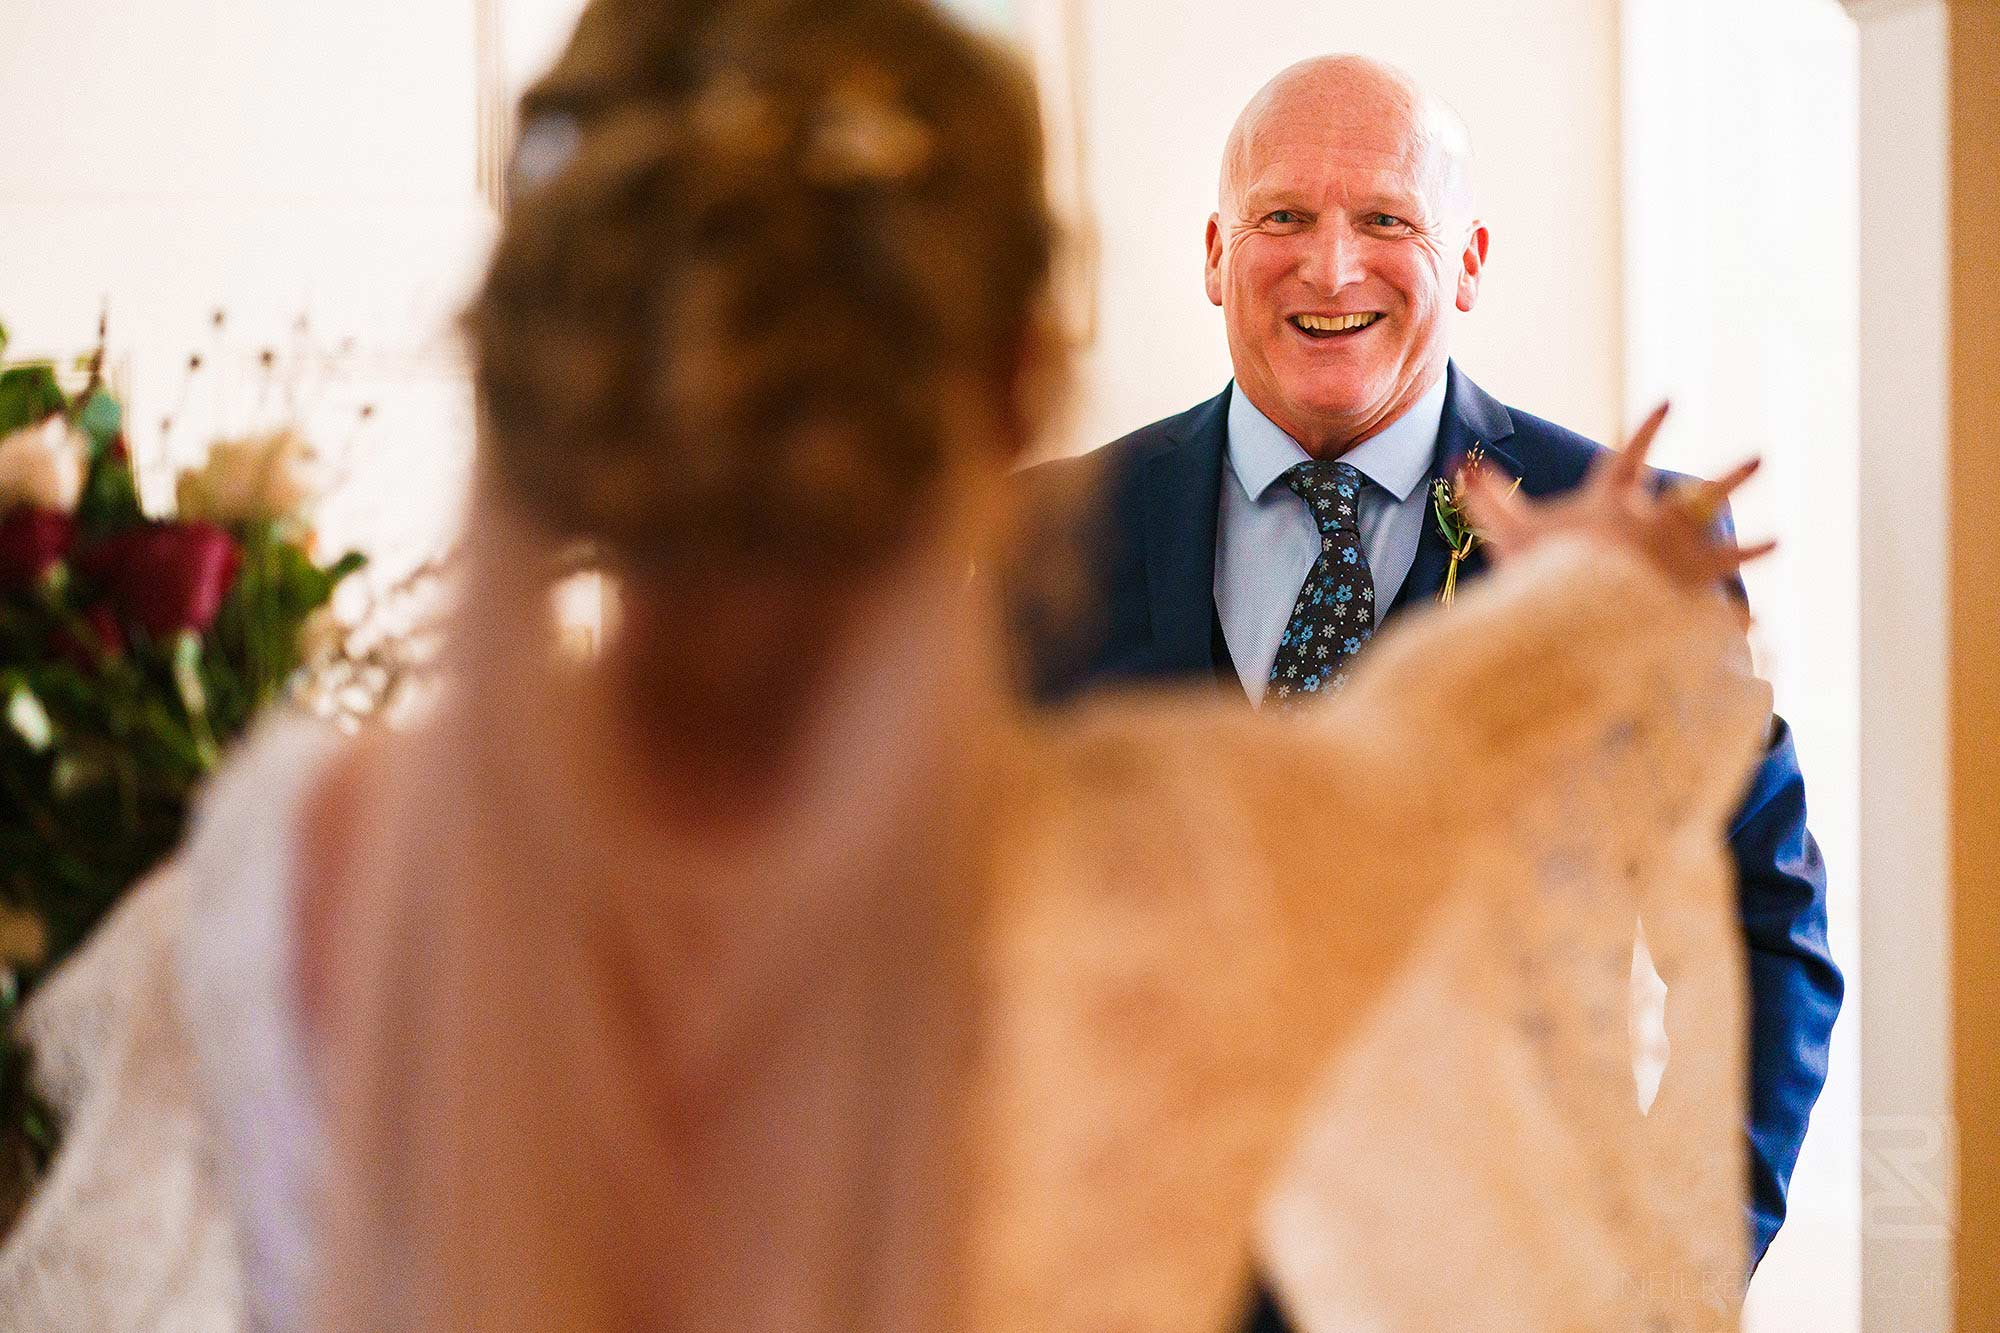 father seeing daughter in wedding dress for first time